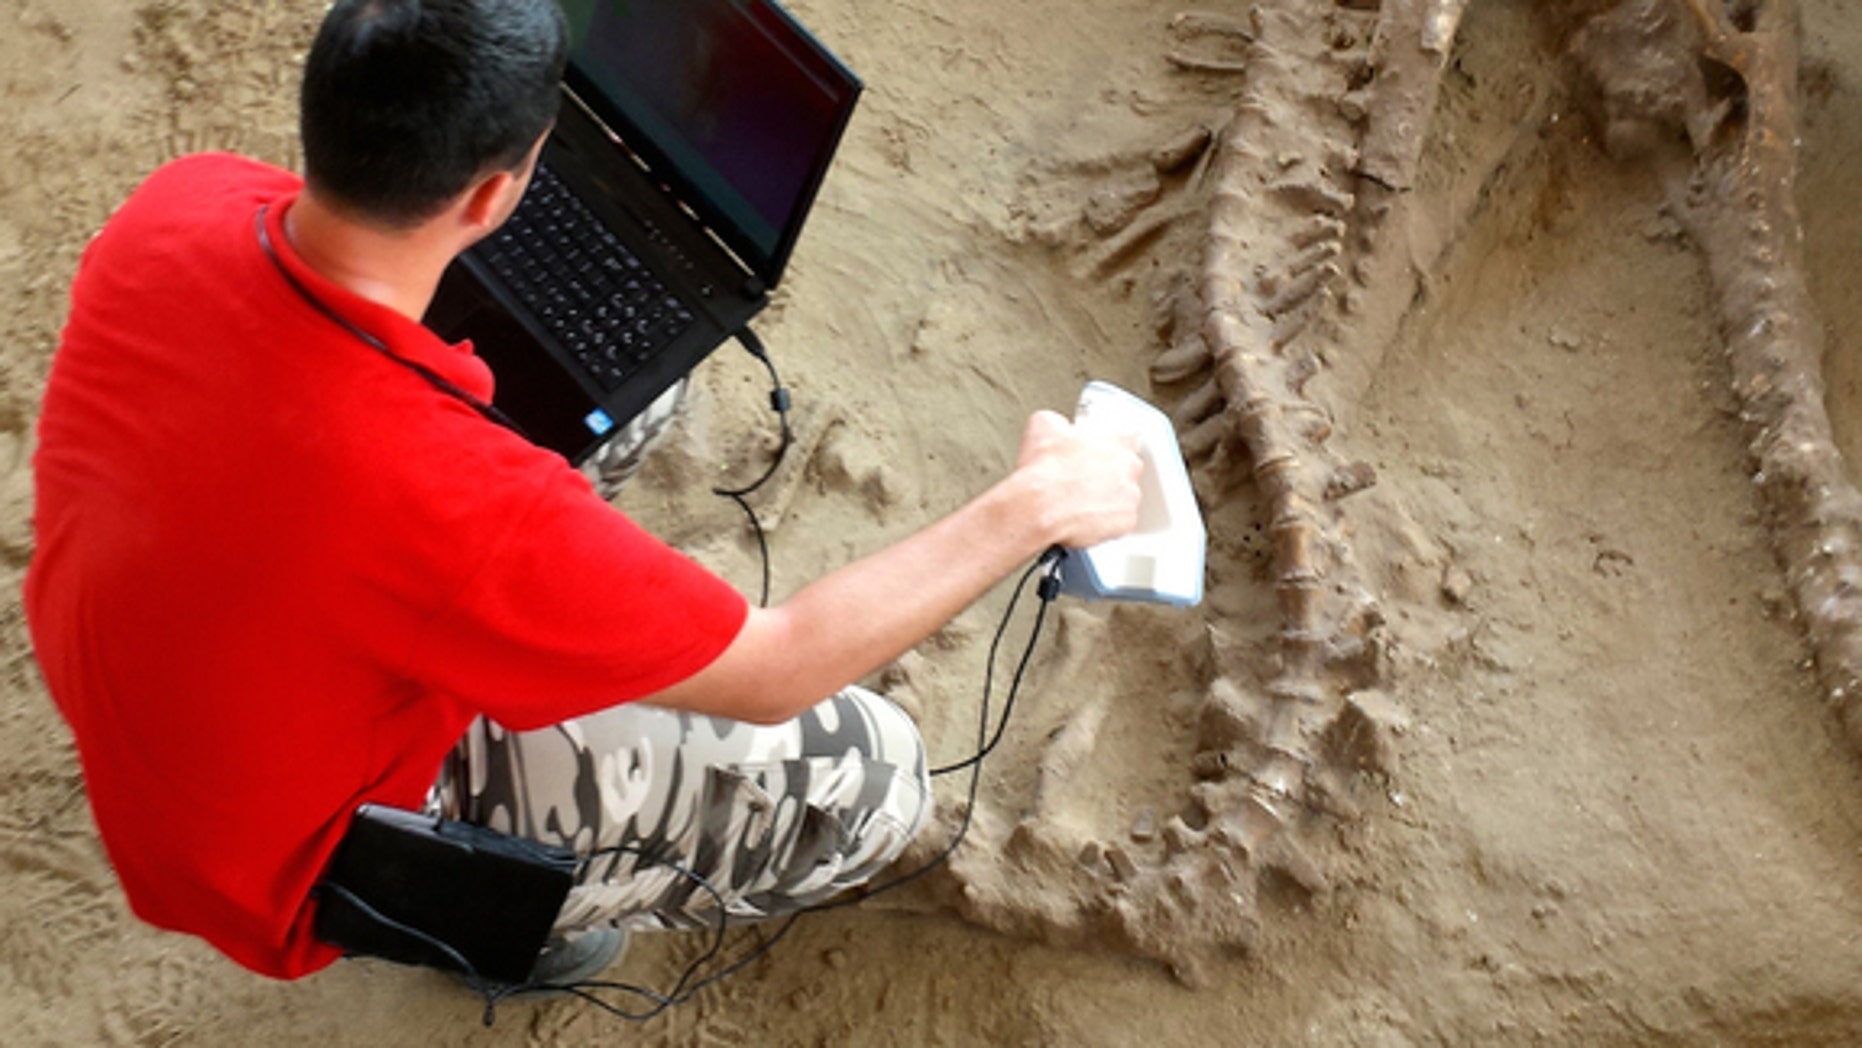 Denis Baev takes a 3-dimensional scan of the crocodile, whose long snout likely helped it catch fish during its lifetime 1.8 million years ago.